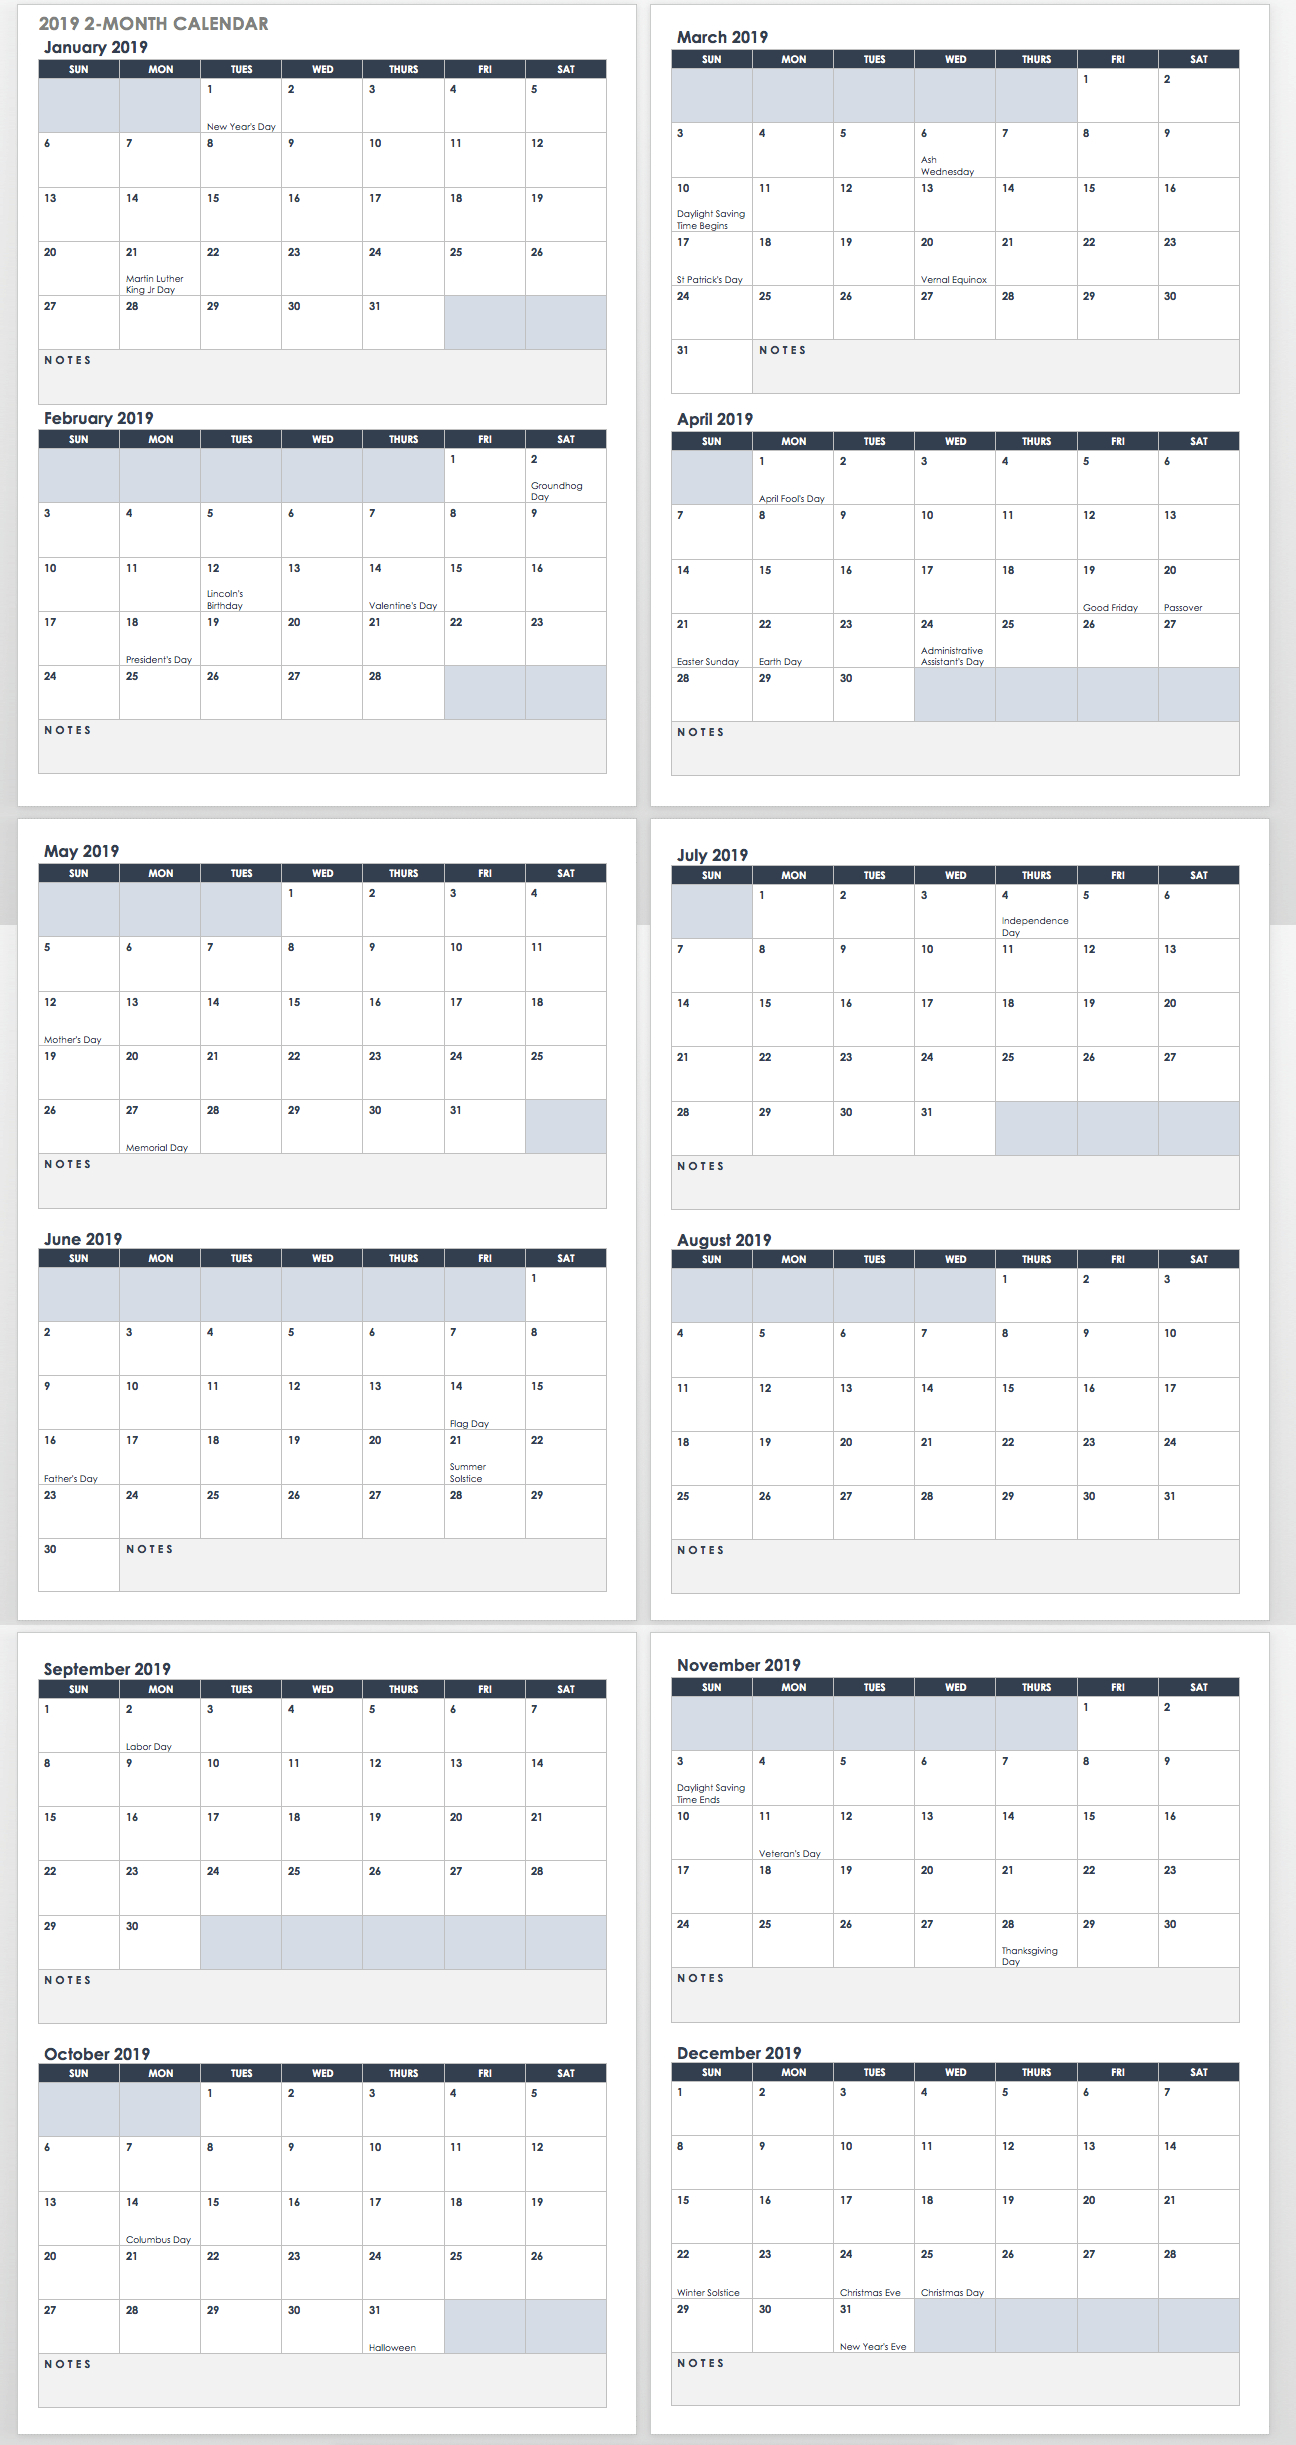 15 Free Monthly Calendar Templates | Smartsheet throughout Template For Calendar By Month